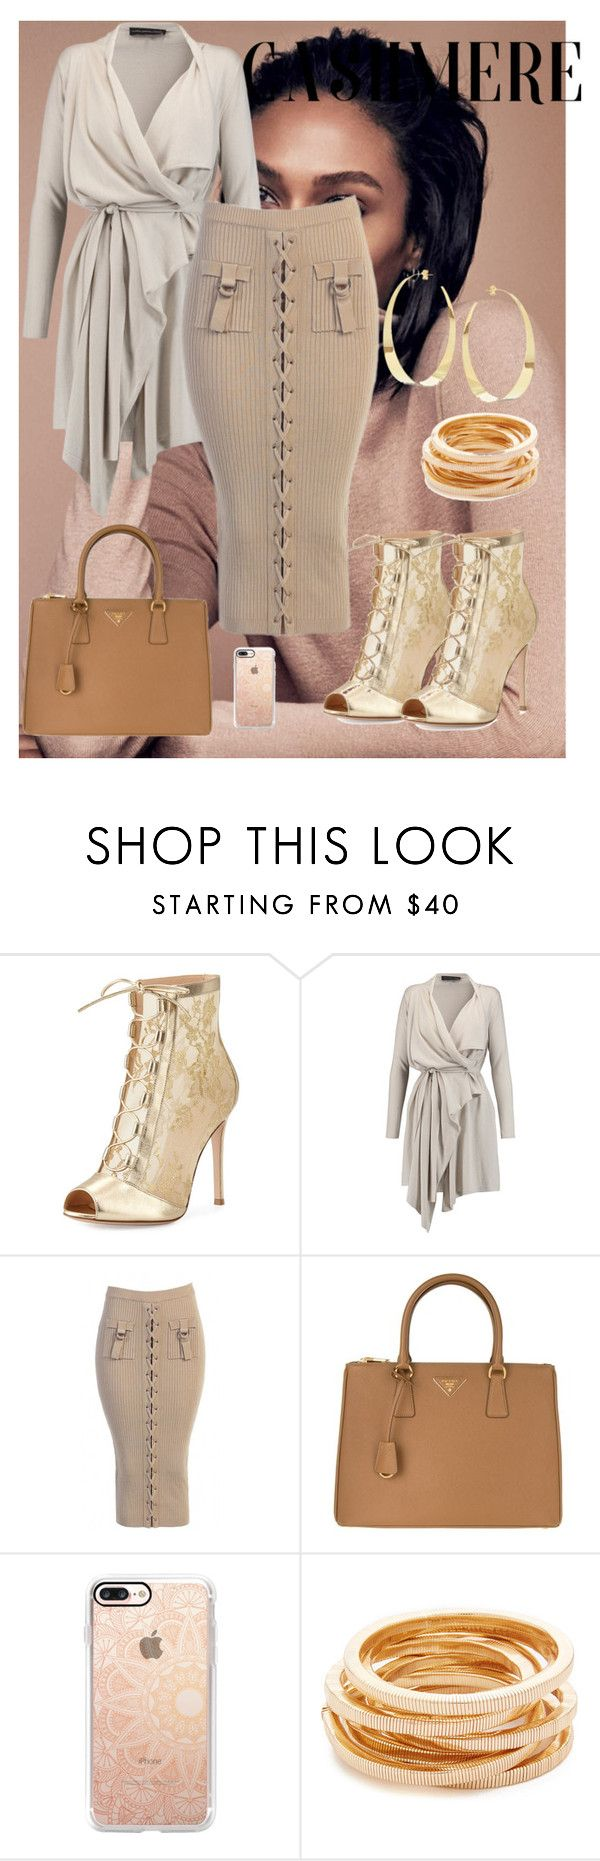 """#voteme"" by th3-qu33n-25 on Polyvore featuring Gianvito Rossi, Maria Grachvogel, Prada, Casetify, Kenneth Jay Lane and Lana"